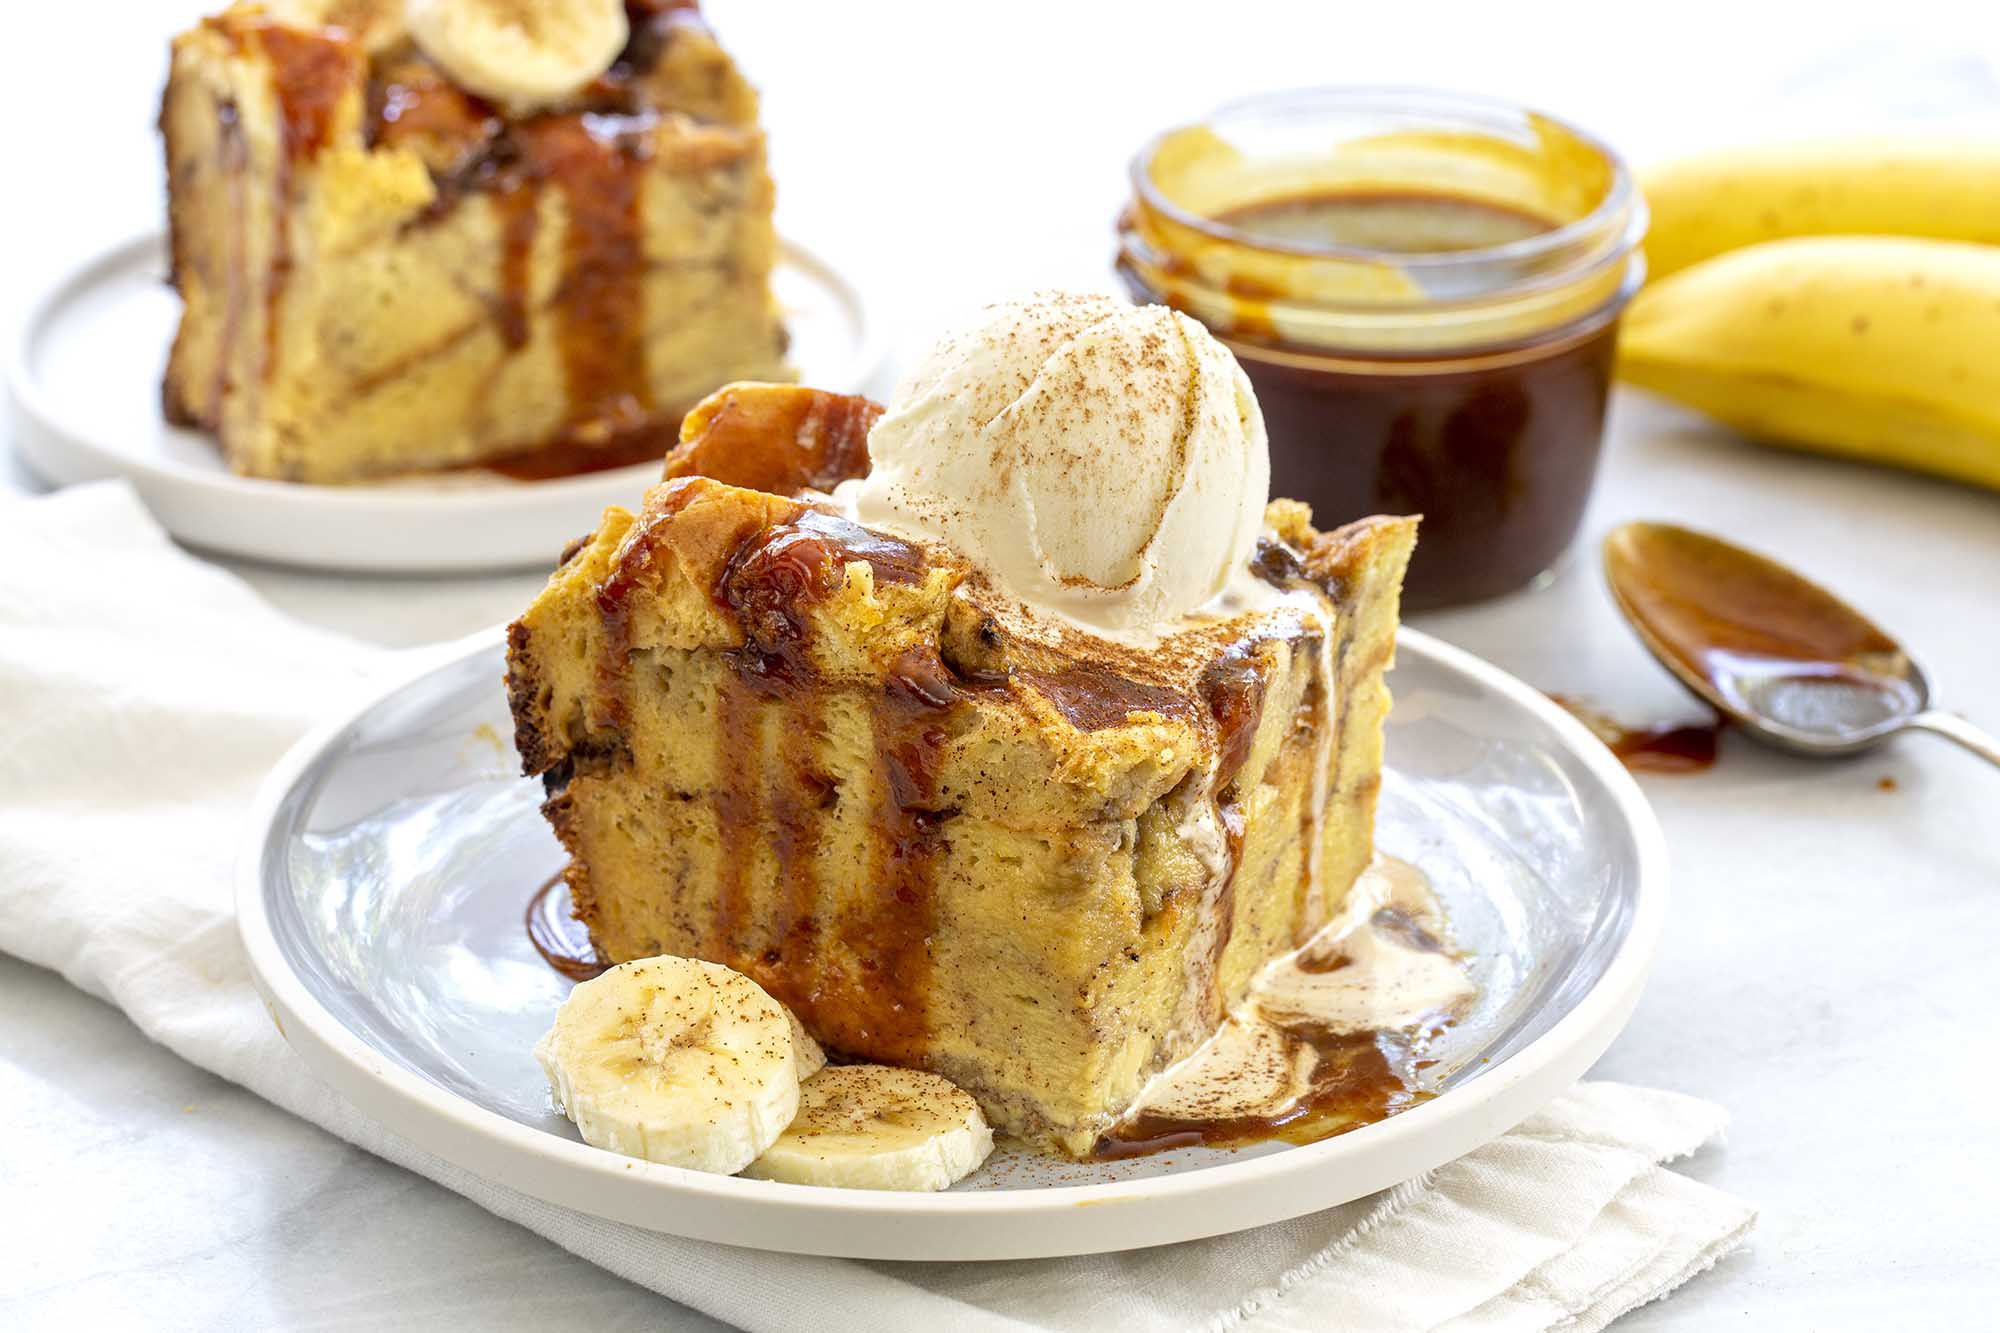 Slice of the best slow cooker banana bread pudding topped with a scoop of ice cream and drizzeld with caramel sauce on a gray plate. A jar of caramel sauce is off to the side.